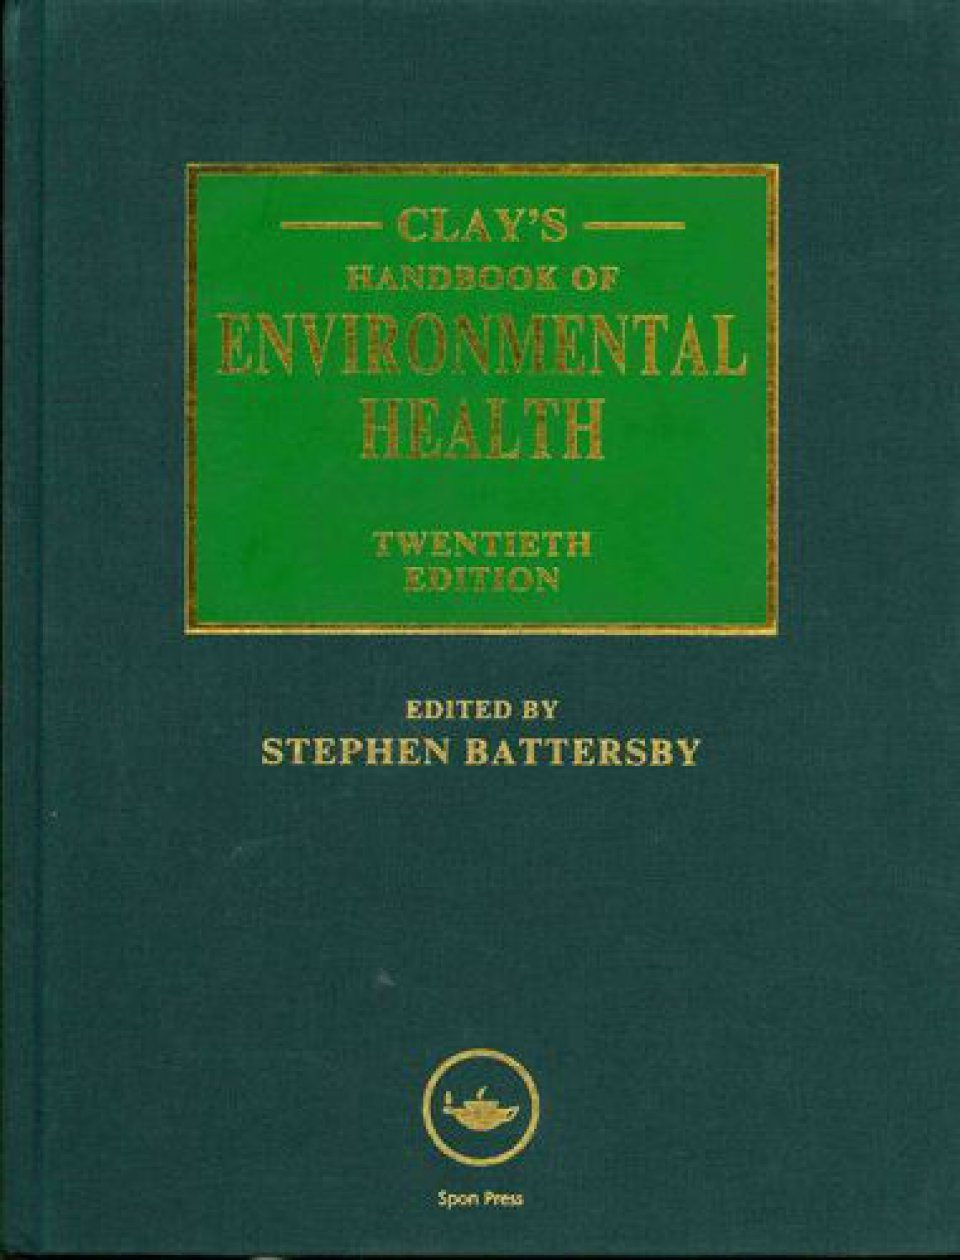 Clay's Handbook of Environmental Health